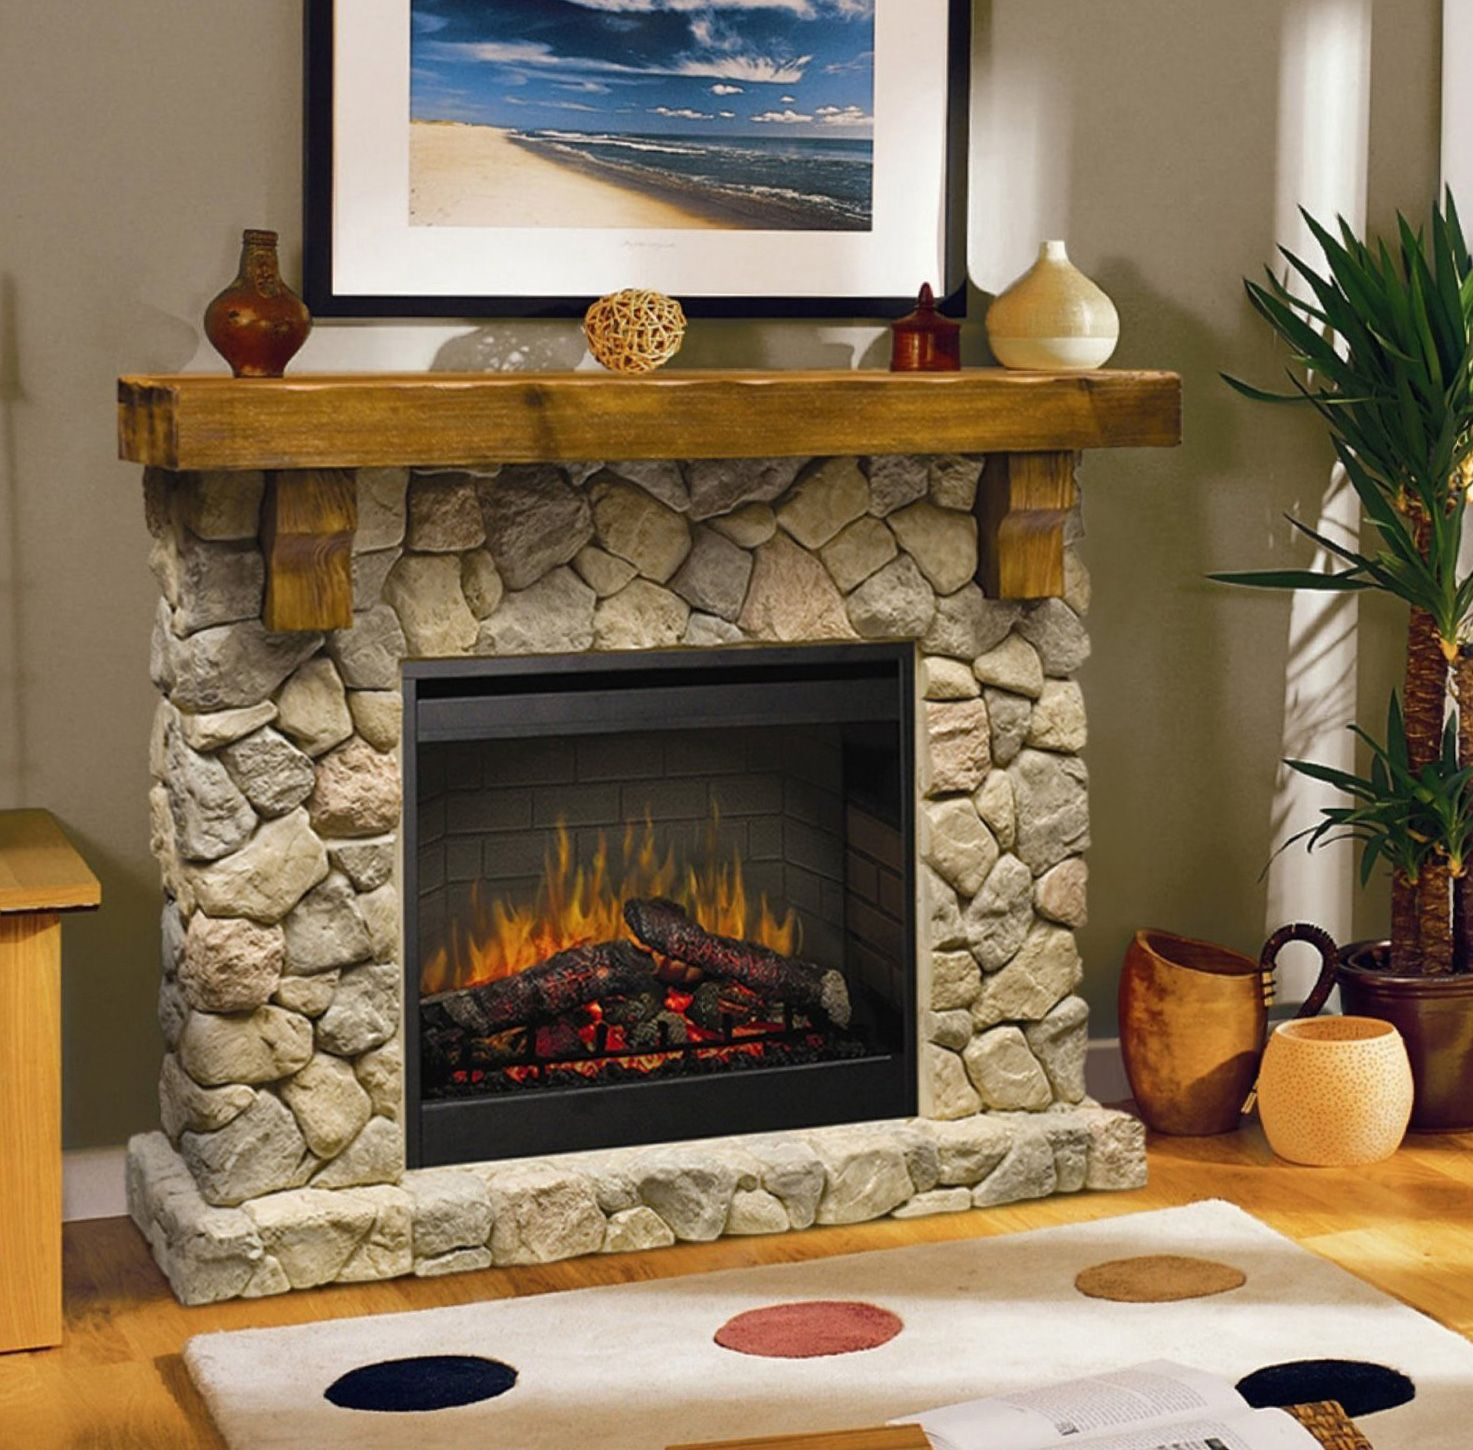 Northern Stoneworks Designs And Manufactures Custom Stone Fireplace Mantels And Surrounds